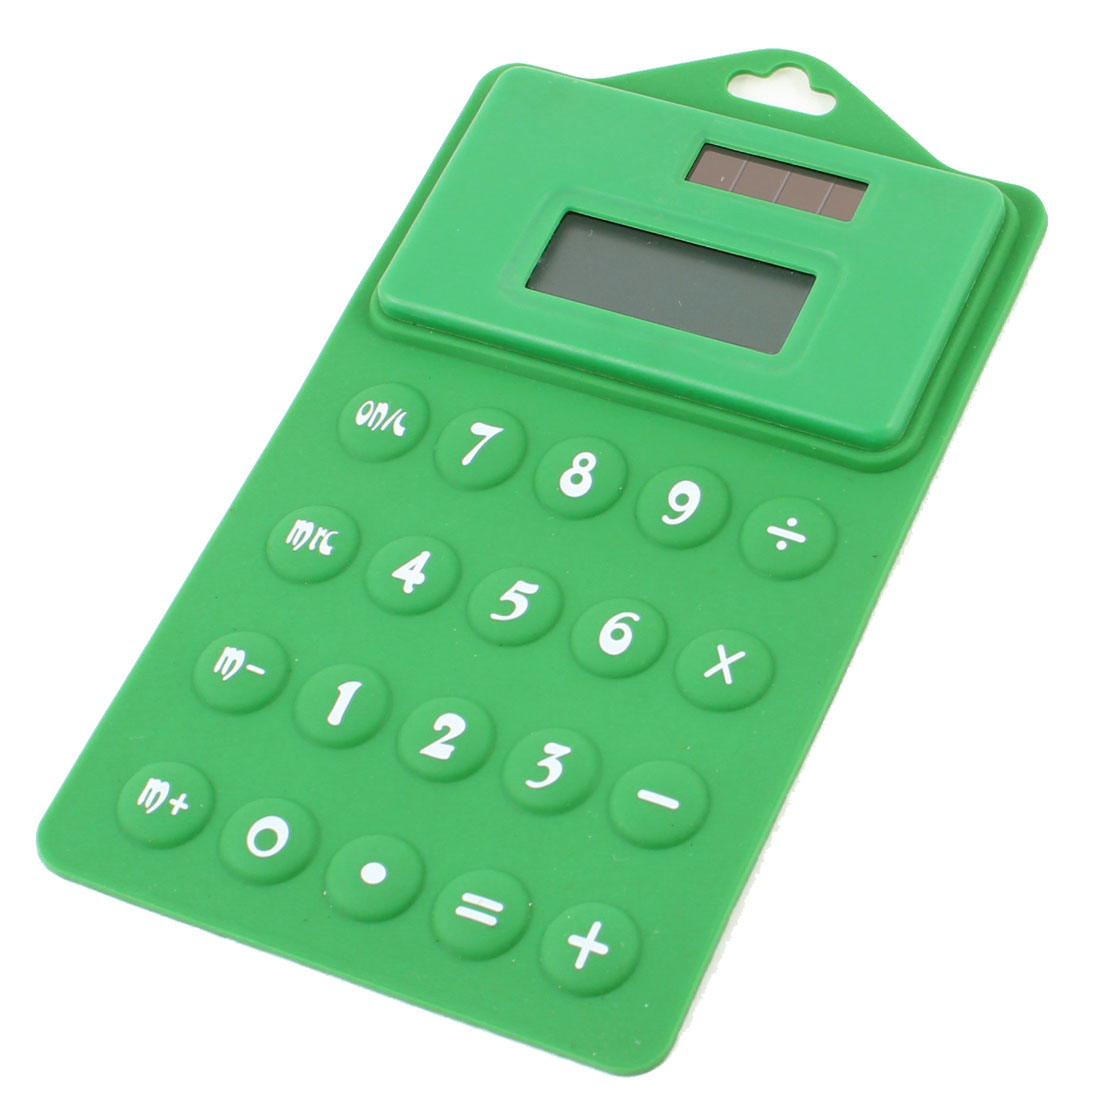 School Student Arabic Number Hanging Solar Power Foldable Calculator Green White